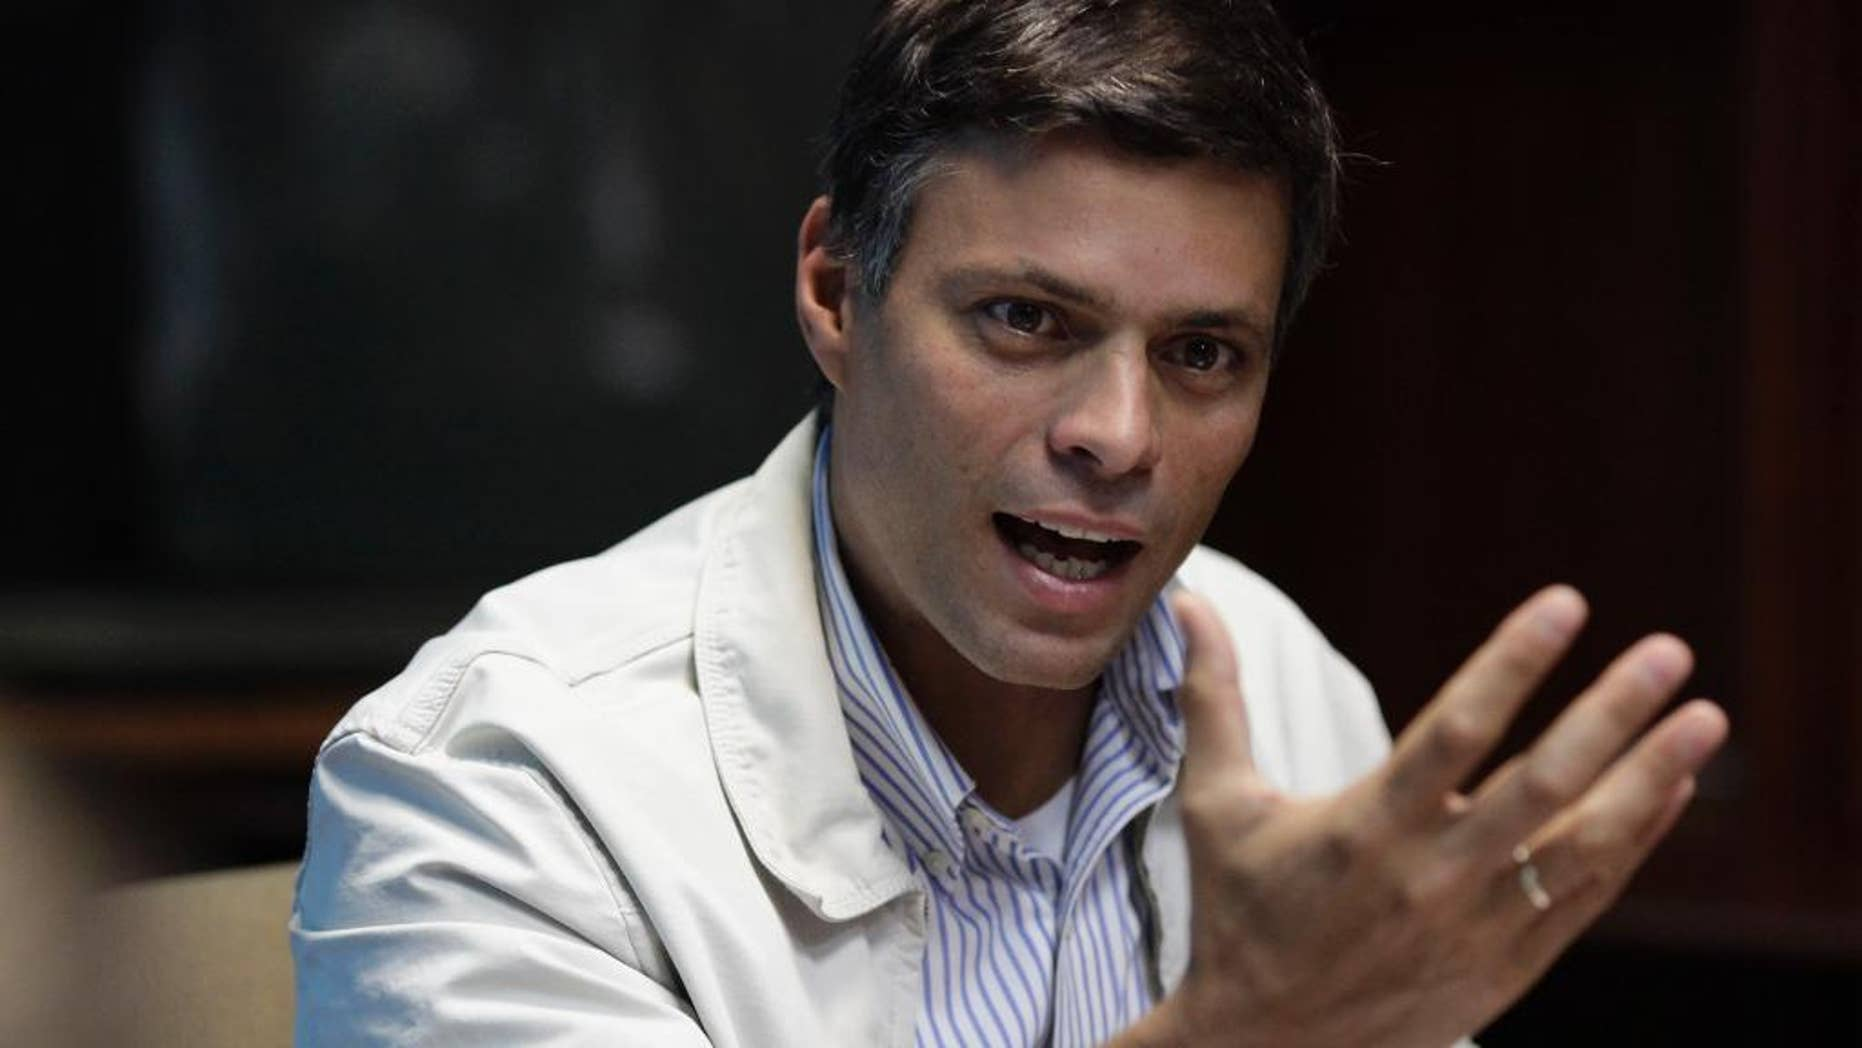 FILE - In this Feb. 26, 2013 file photo, Opposition leader Leopoldo Lopez speaks during a press conference in Caracas, Venezuela. A Venezuelan appeals court upheld on Friday, Aug. 12, 2016 the nearly 14-year prison sentence given to  Lopez for inciting violence during anti-government protests in 2014, his lawyer said. (AP Photo/Ariana Cubillos, File)